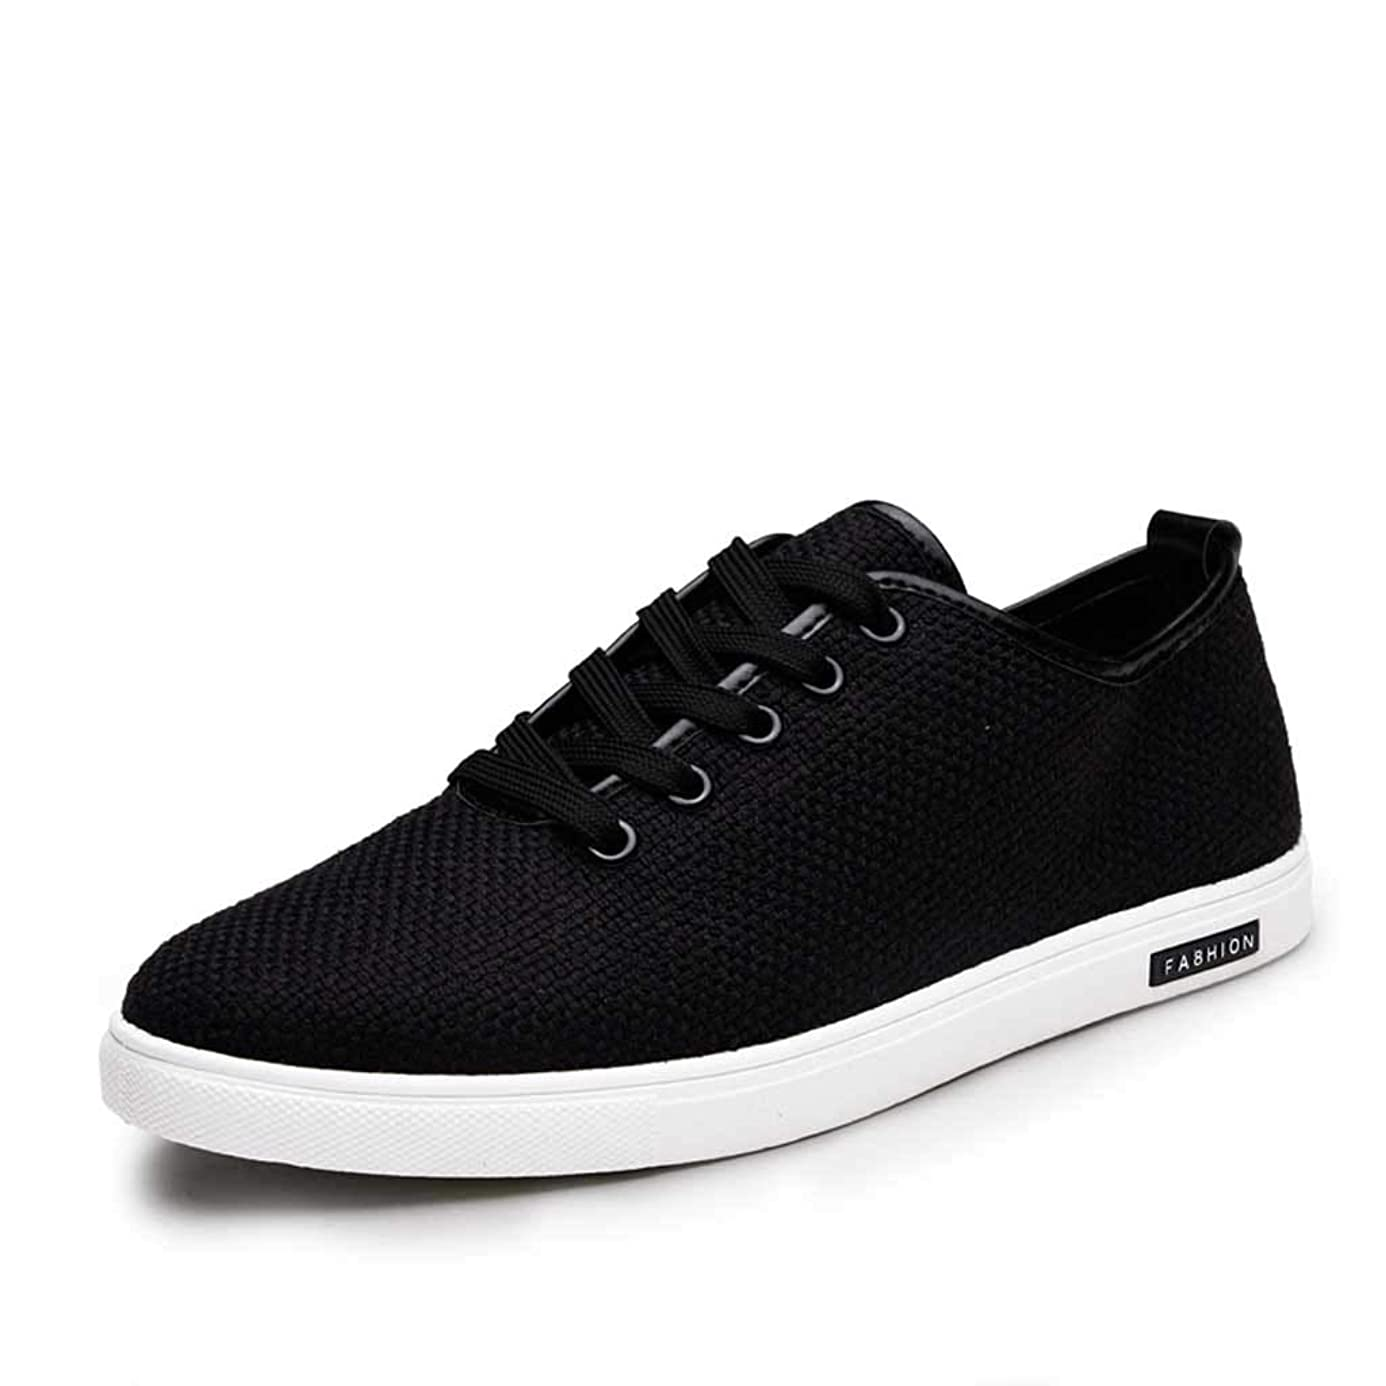 Men's Flat Lace Up Sneakers,Mosunx Athletic Teen Boys Woven Breathable Solid Sport Running Shoes Summer Low-Top Linen Canvas Casual Shoes (8.5, Black)